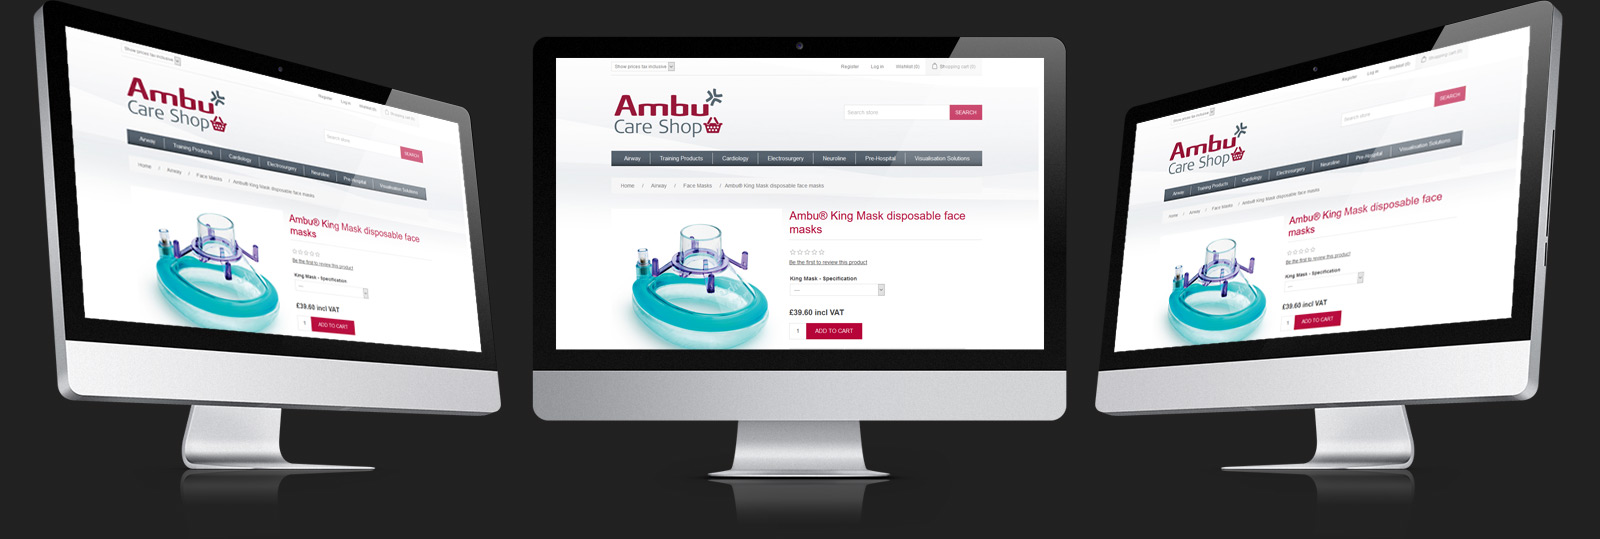 St Ives Web Design - Ambu Care Shop